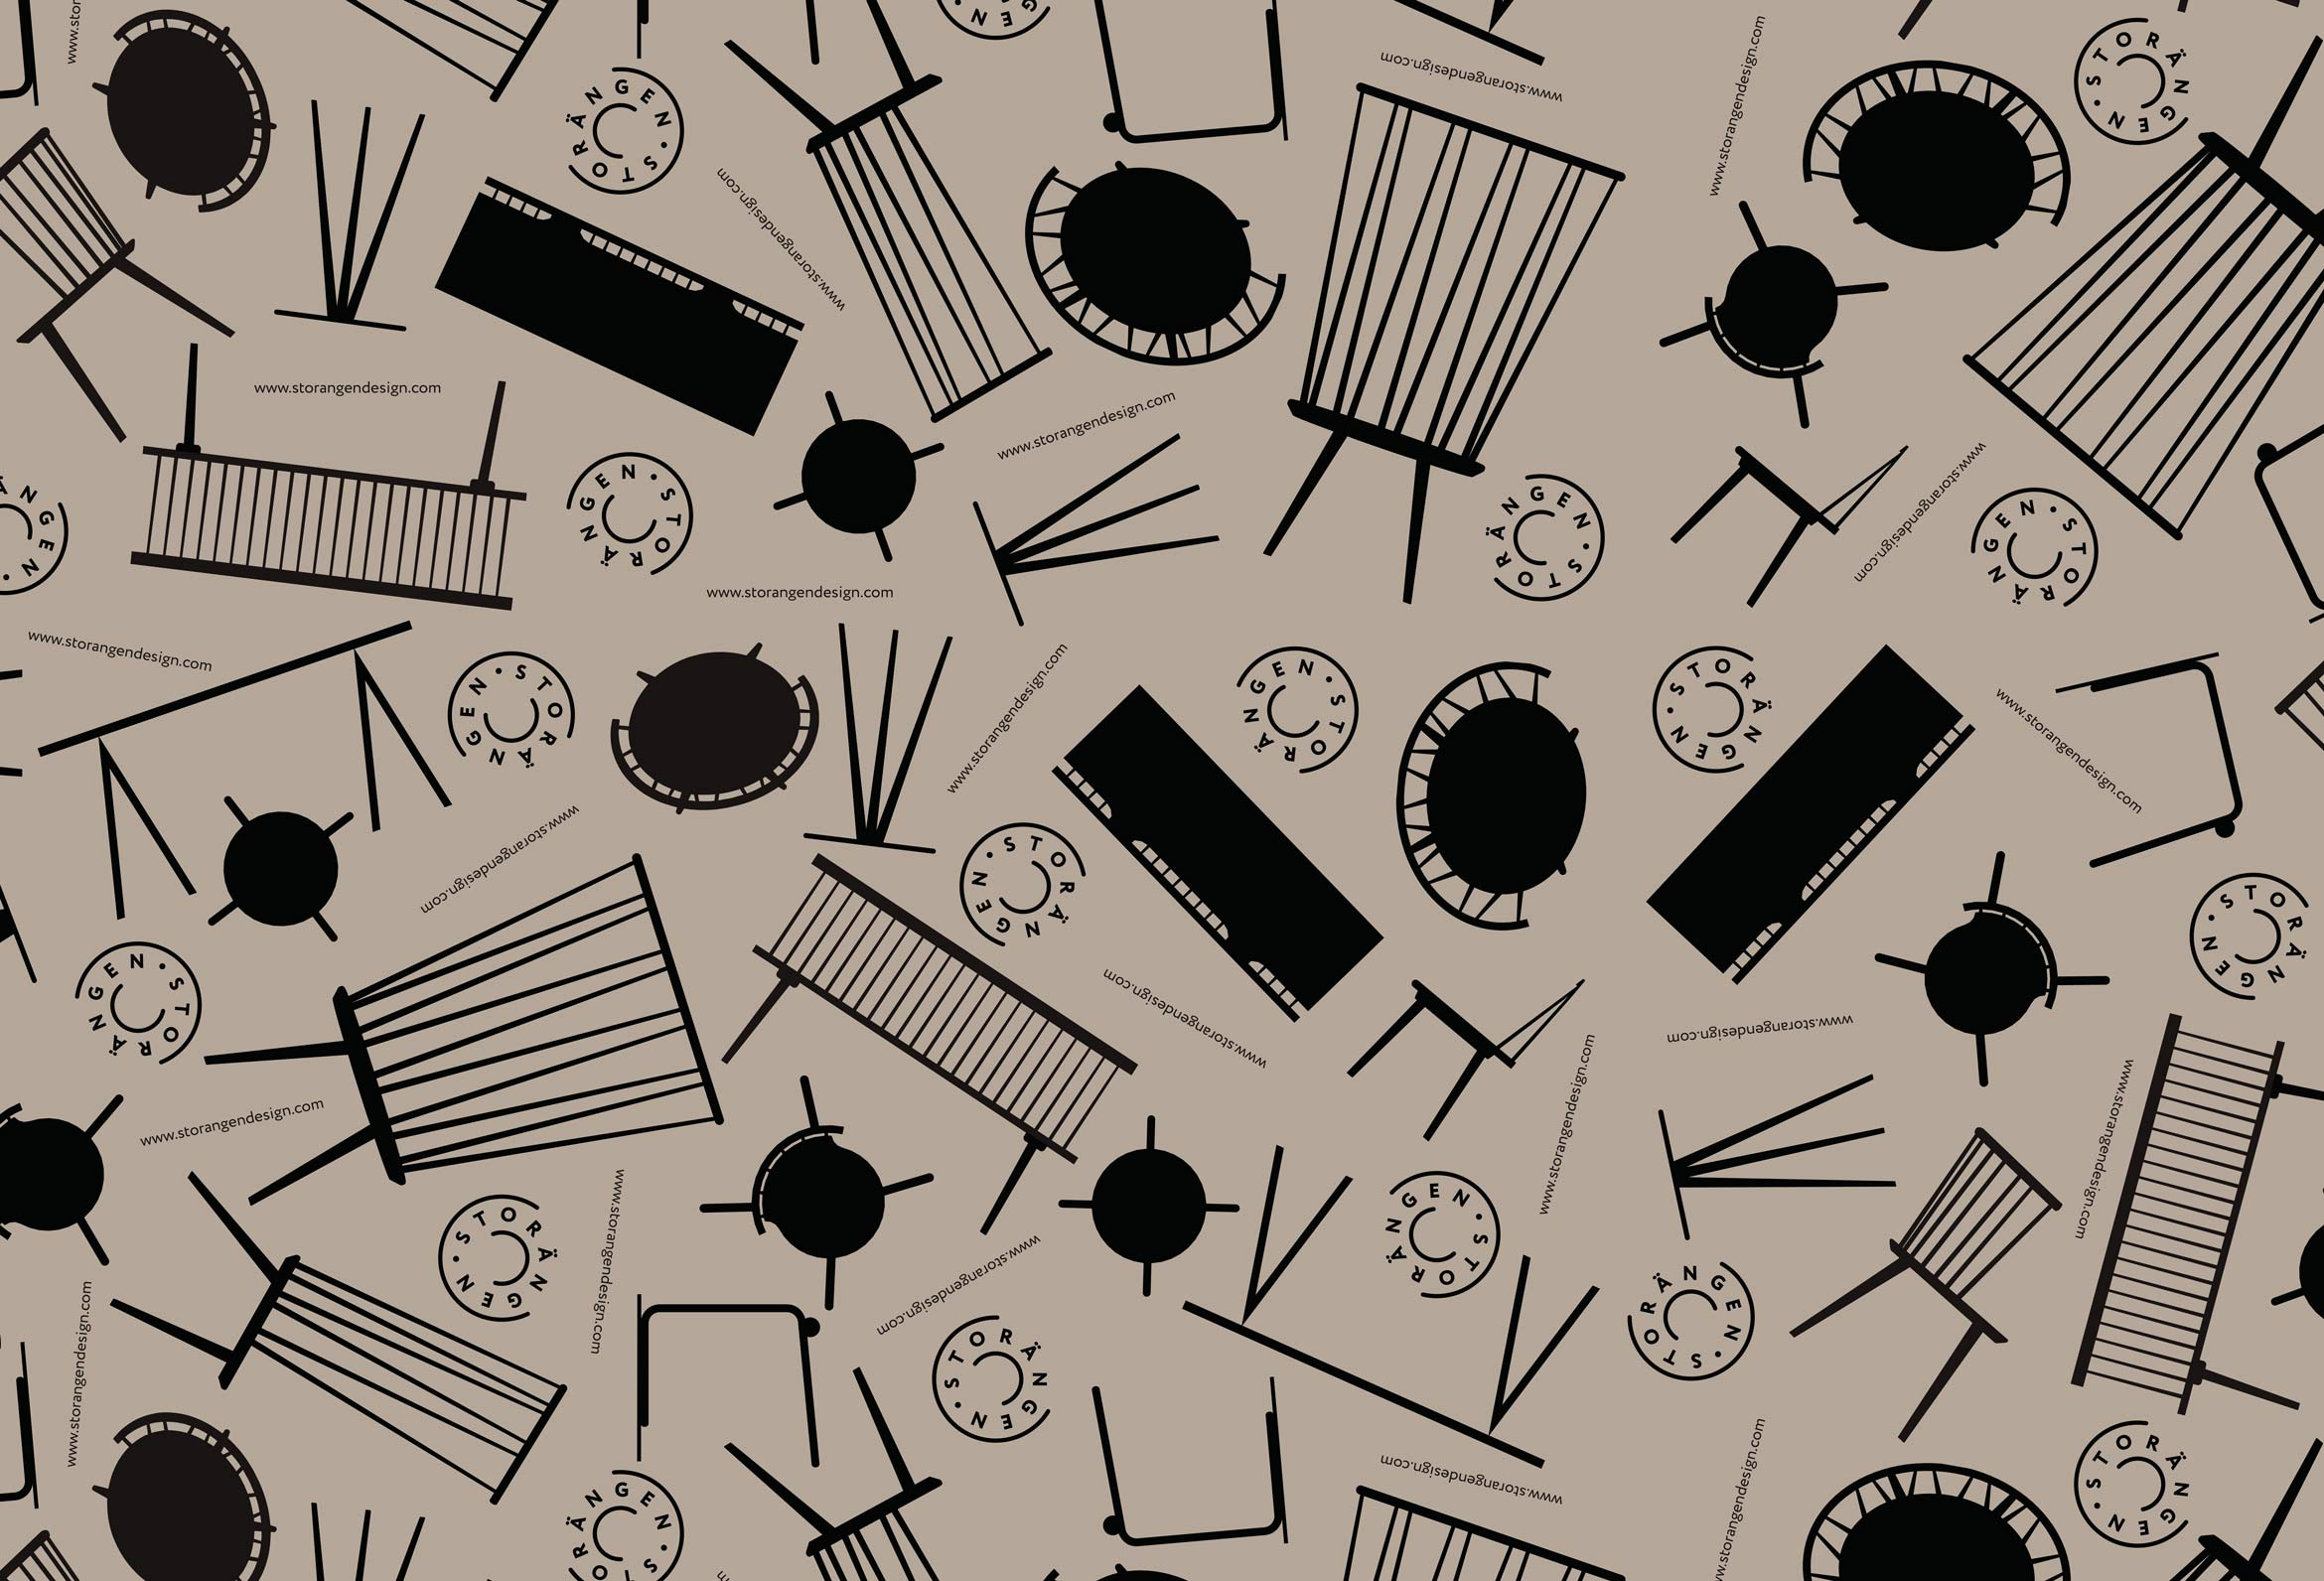 Pattern for print on Cardboard boxes